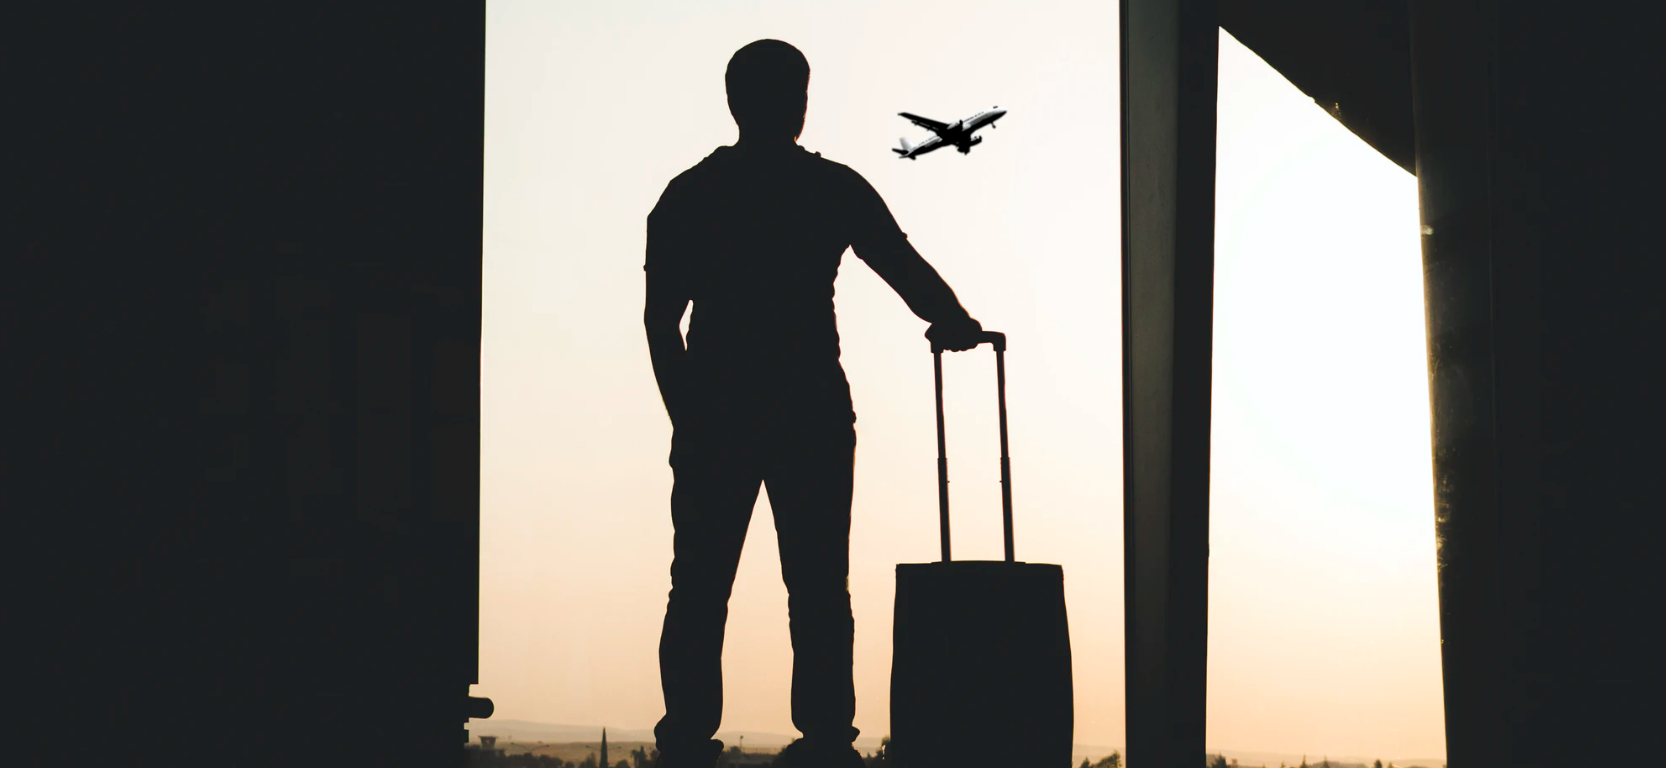 An image of a silhouette of a person with a suitcase and a plane flying in the background.